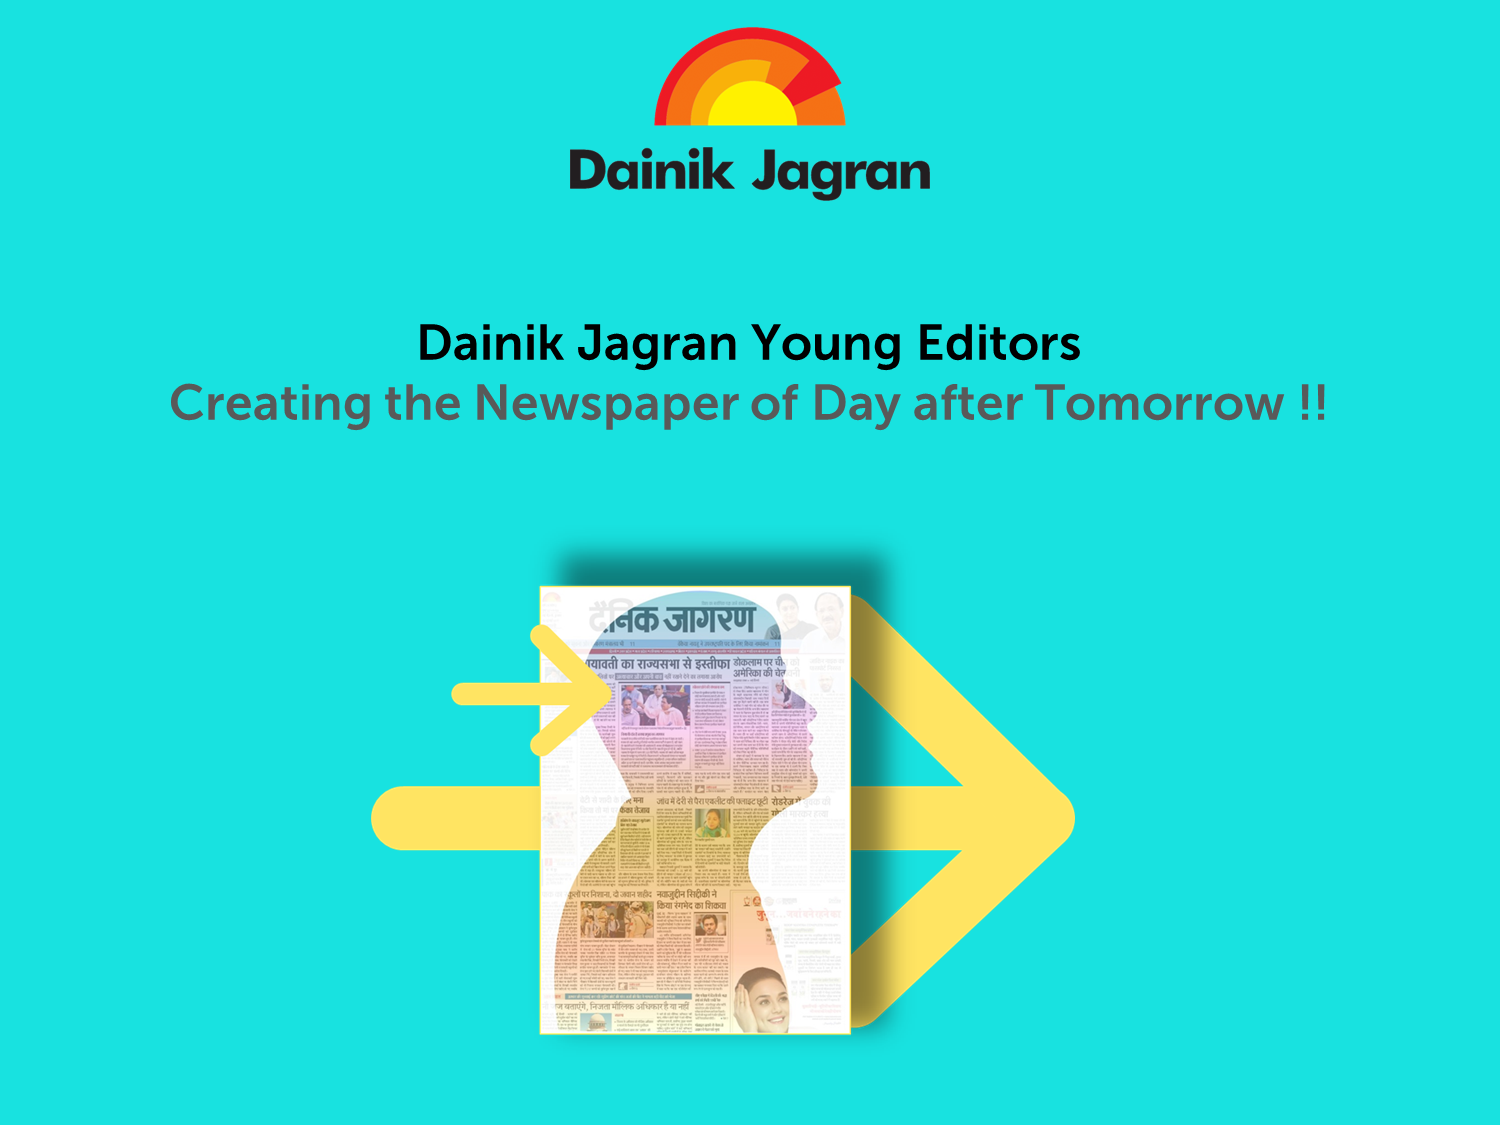 Creating the newspaper of day after tomorrow